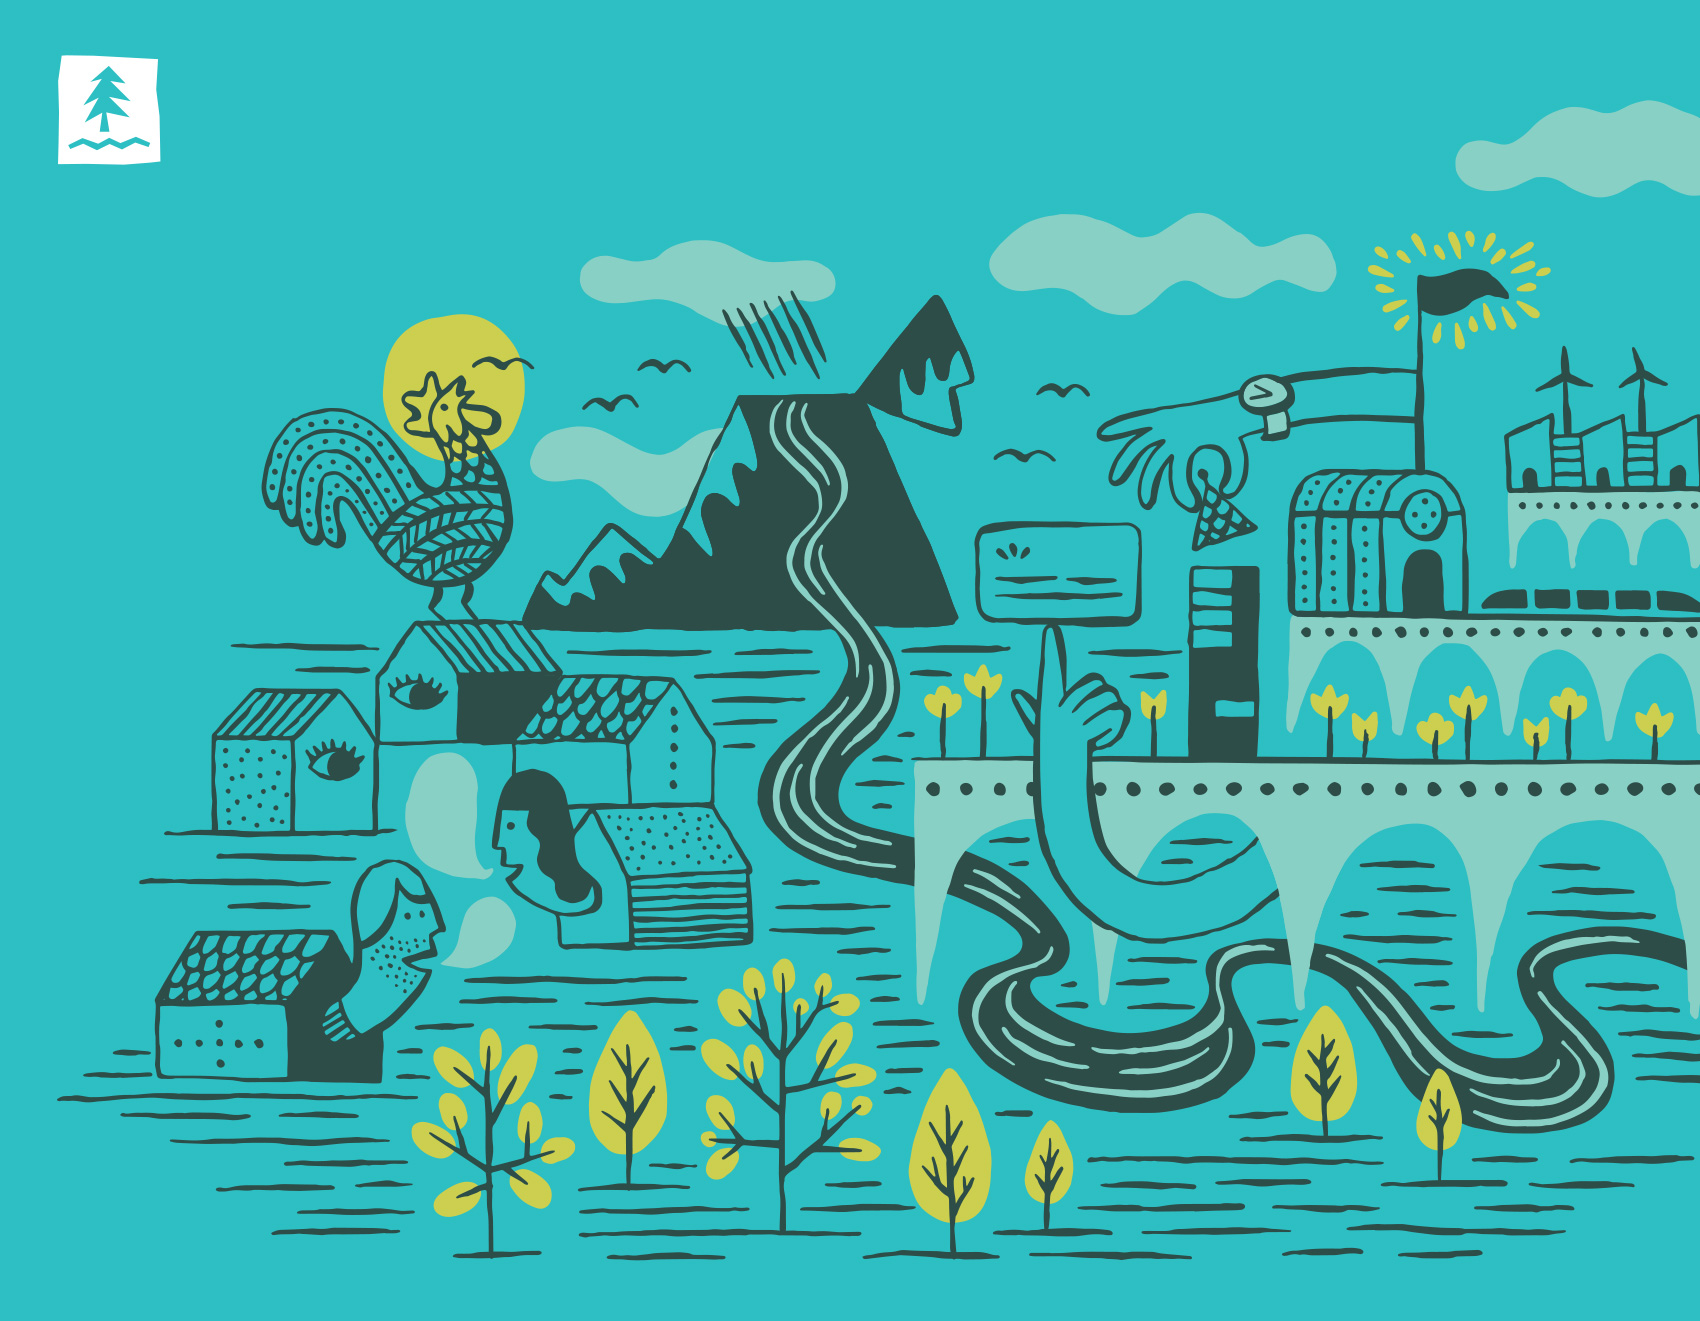 editorial illustration test for Umpqua Bank combining a community of personal, business, landscape, nature & city